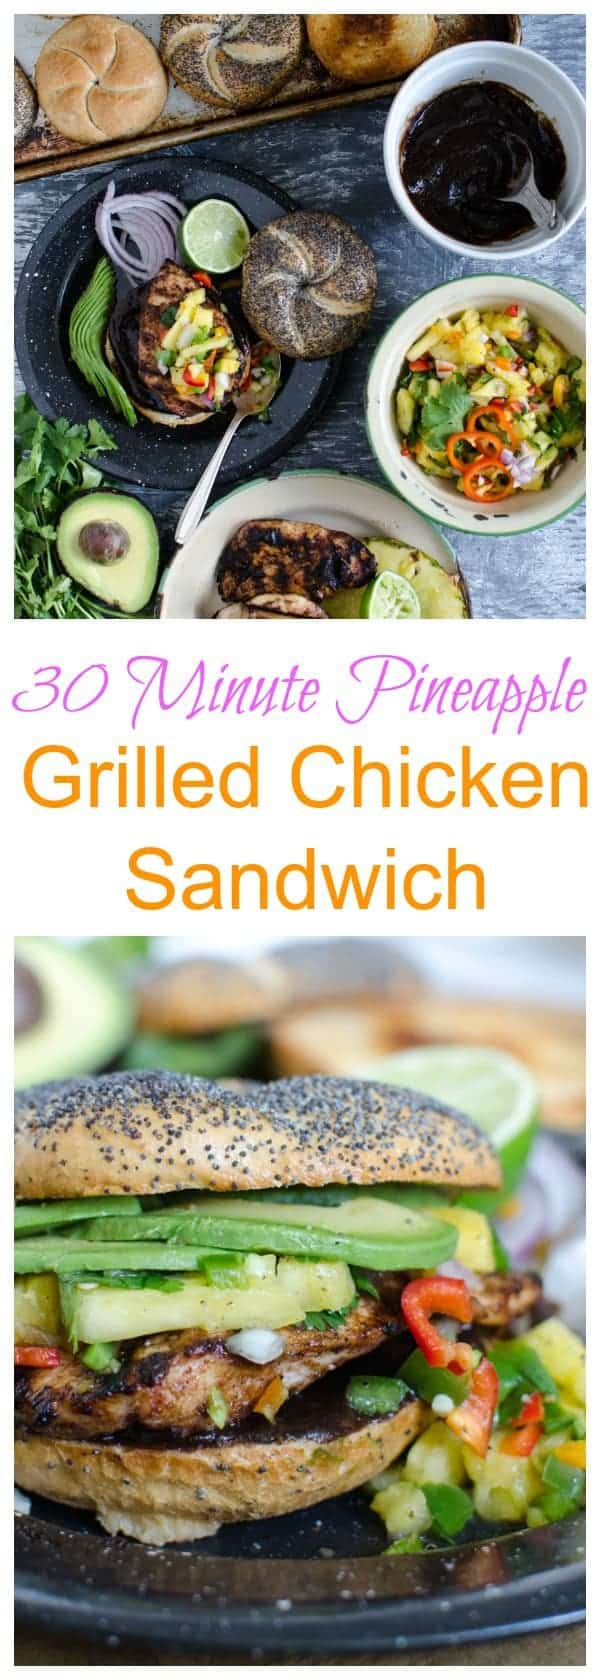 Weeknight Grilled Chicken Sandwiches with Pineapple Salsa Recipe (30 Minute Meal)